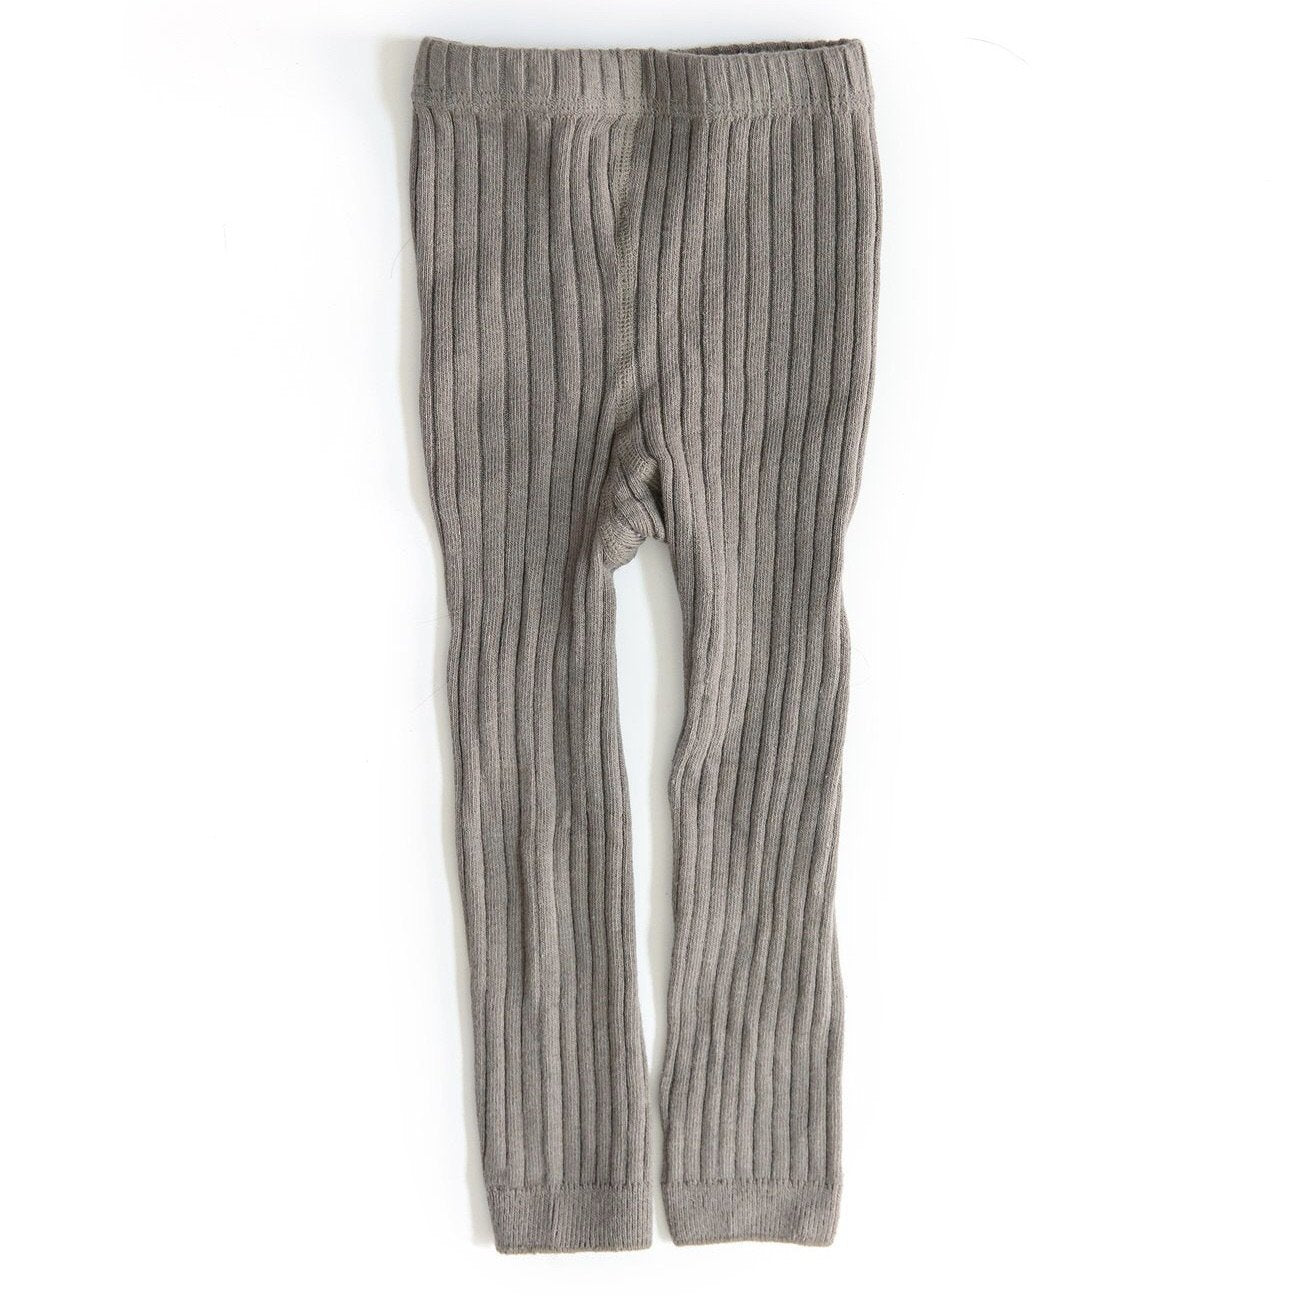 Ribbed Tights - Grey Indigo Attic